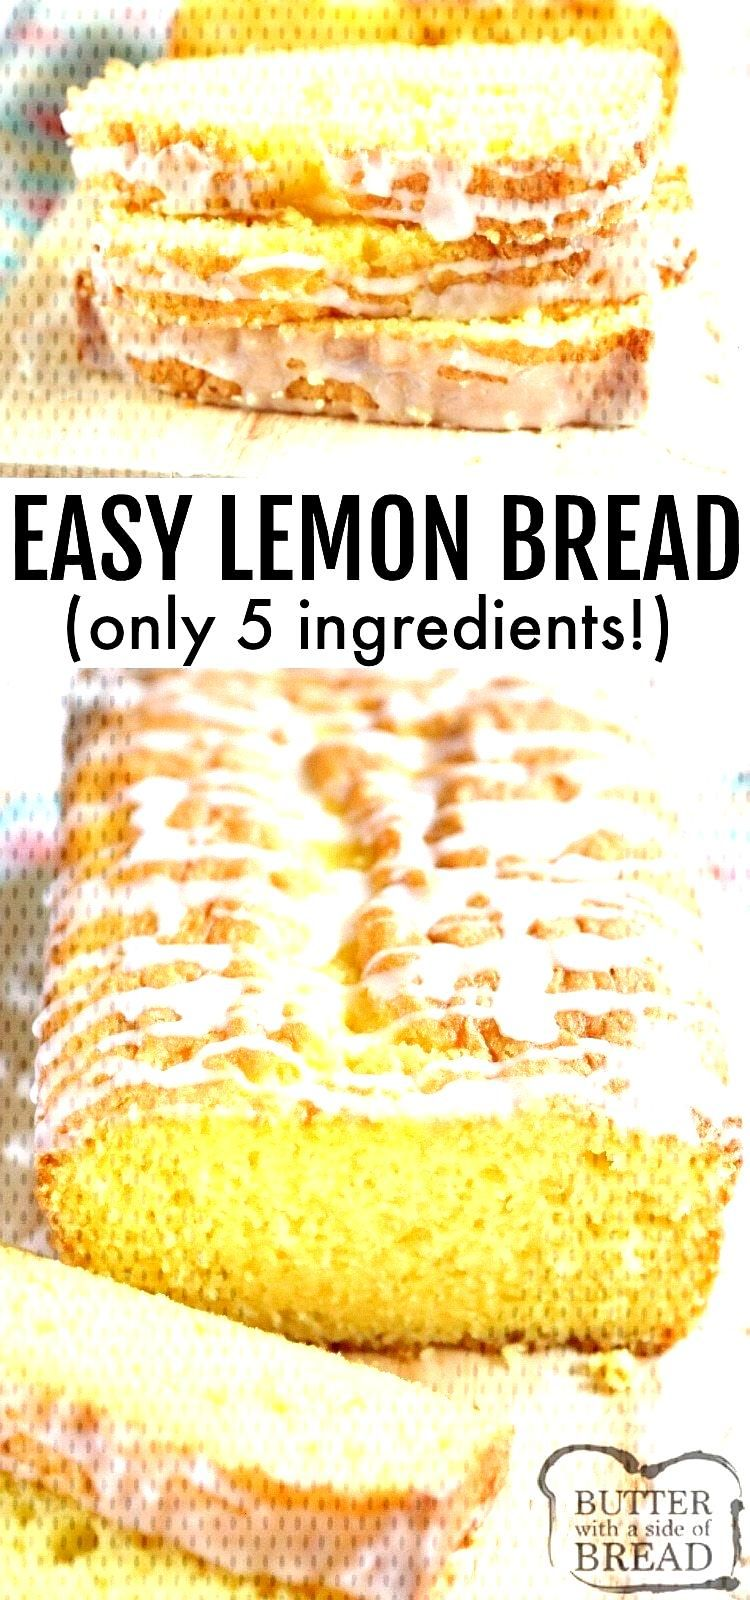 Easy Lemon Bread is moist, full of lemon flavor and made with only five ingredients! This lemon bre